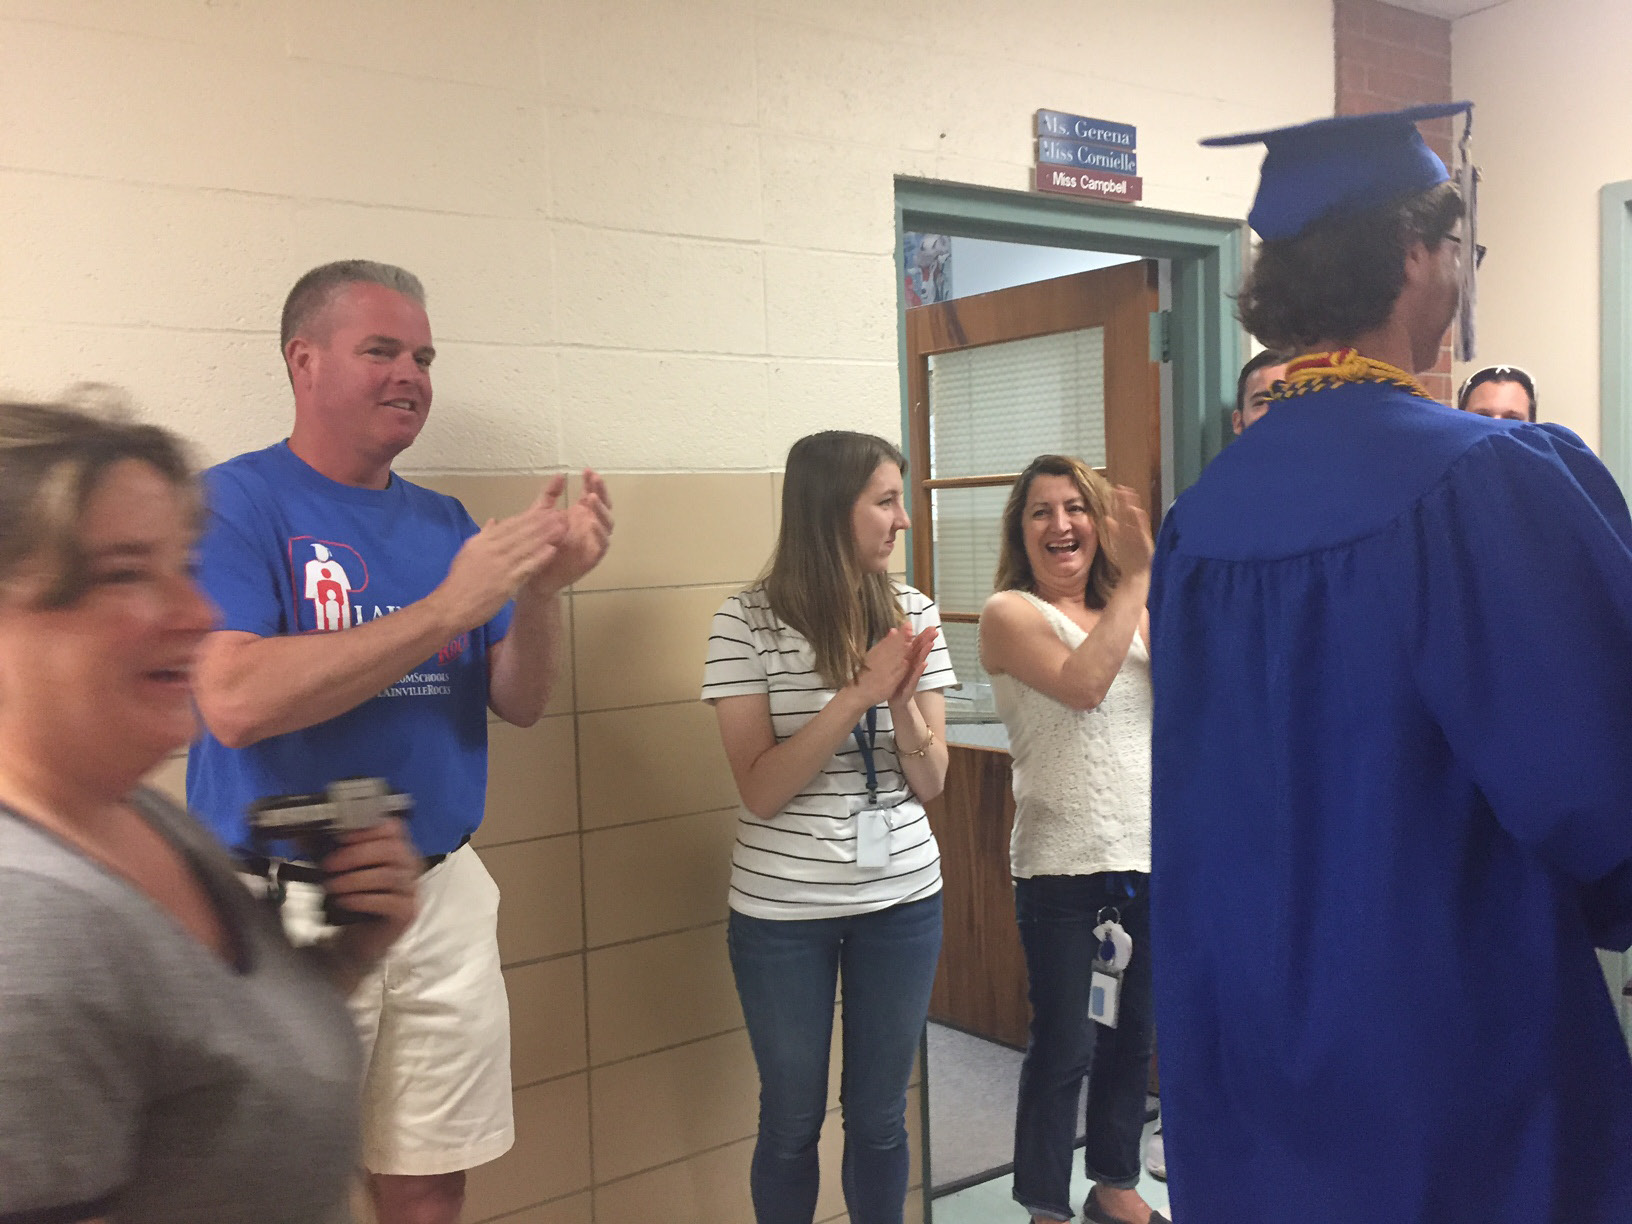 Plainville High School seniors walked down the hall of Wheeler Elementary School, Thursday, June 15. Linden and Toffolon participated as well in the first senior walk. |Ashley Kus, The Plainville Citizen